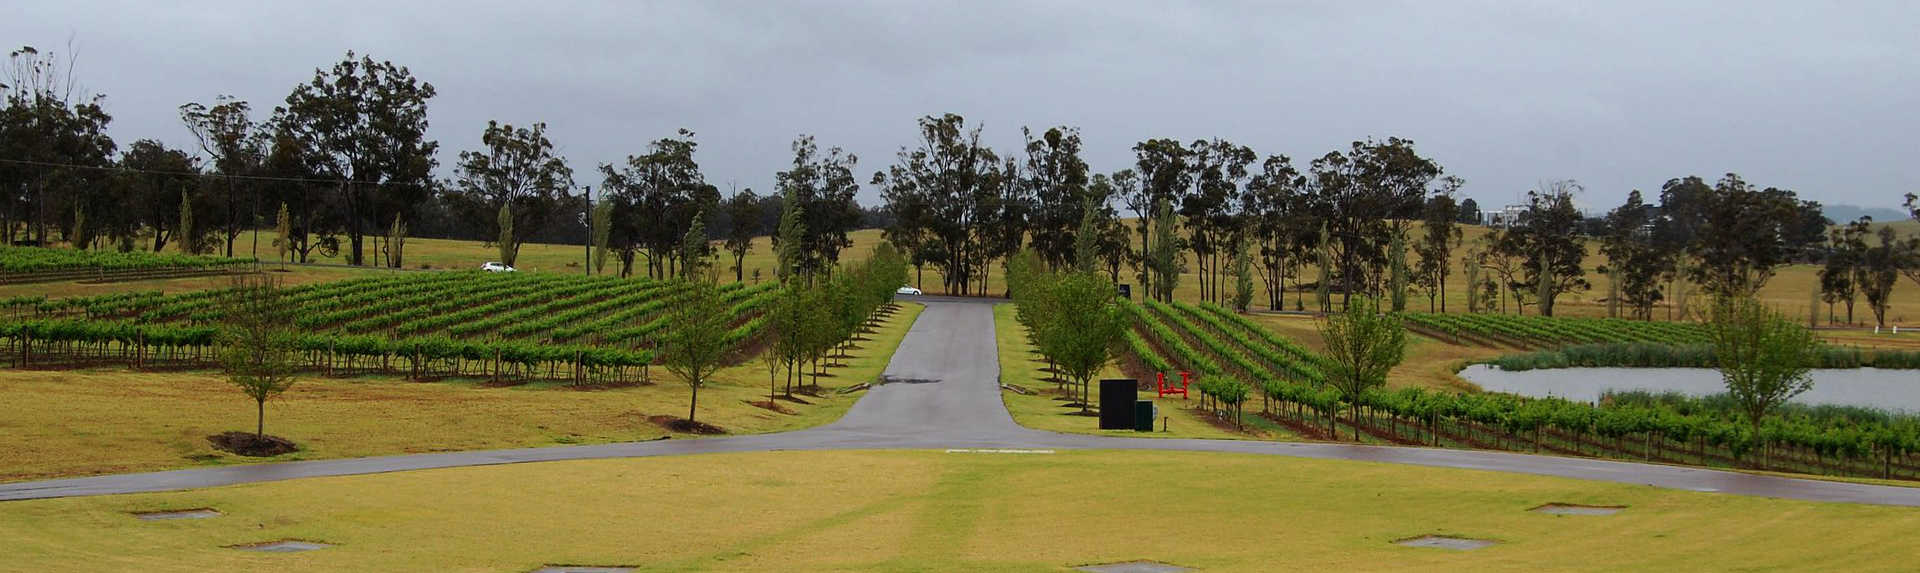 How much is a Hunter Valley wine tour?